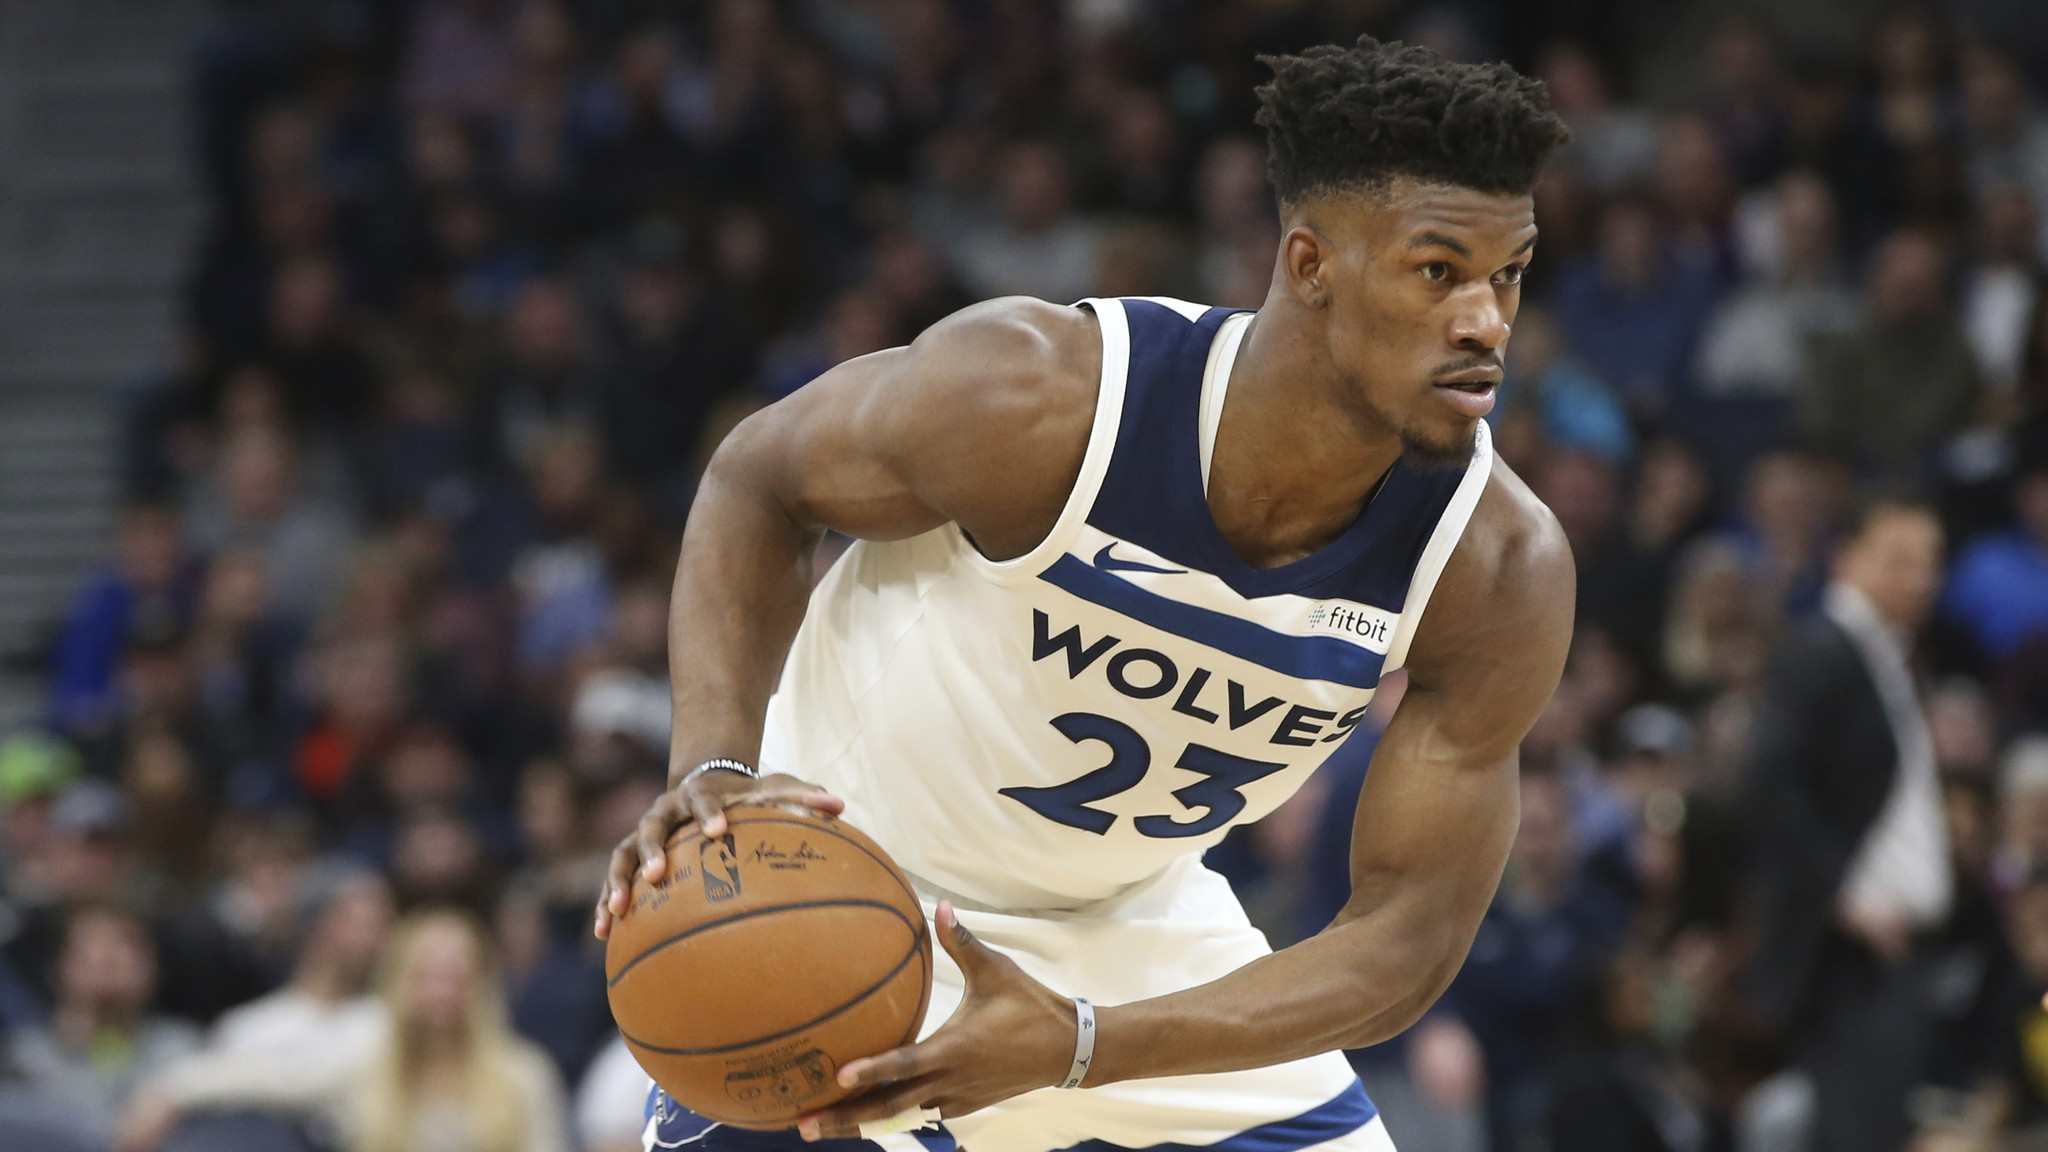 941469c75d1e Can the Timberwolves survive without Jimmy Butler  To make the playoffs